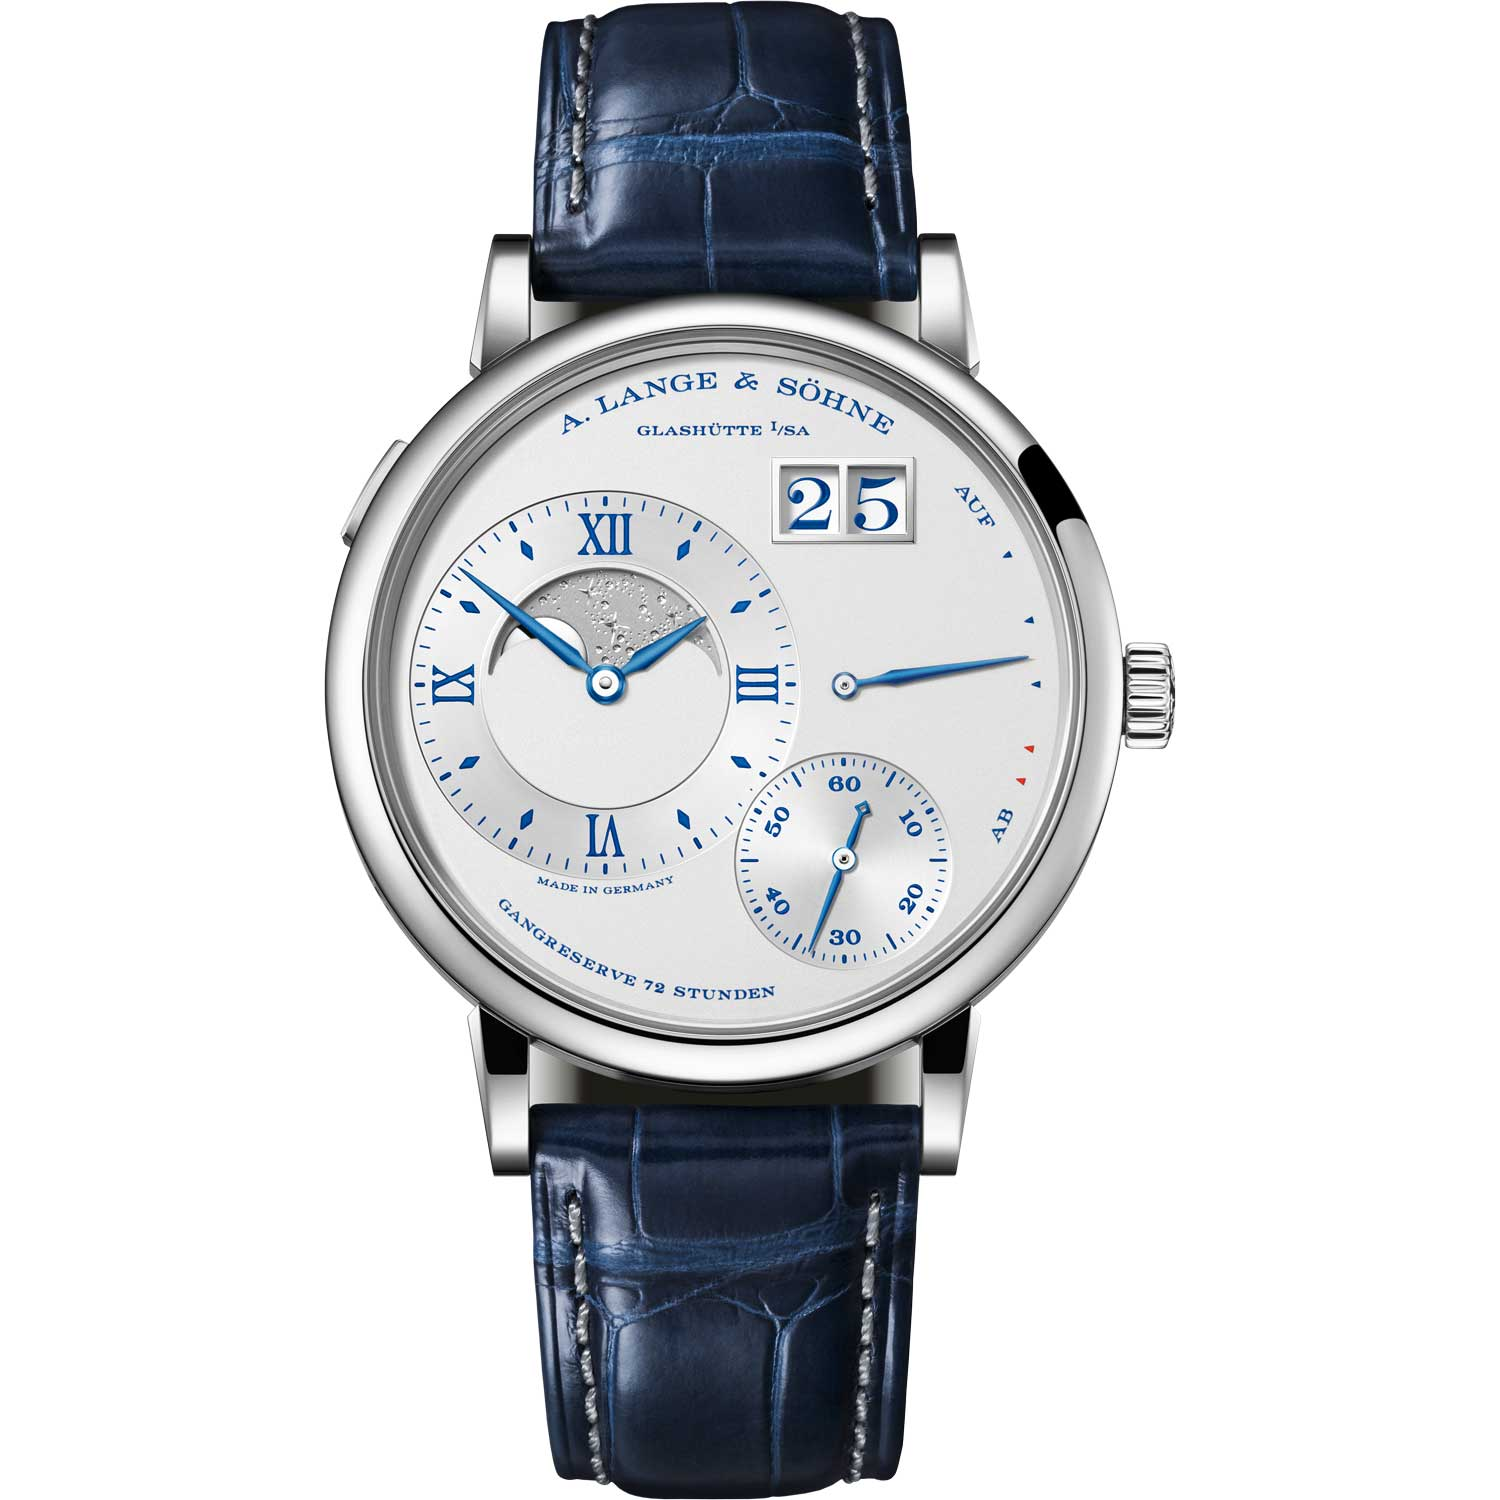 """GRAND LANGE 1 MOON PHASE """"25th Anniversary"""" ref. 139.066; 41.00mm; 25-piece limited edition; launched in February 2019"""